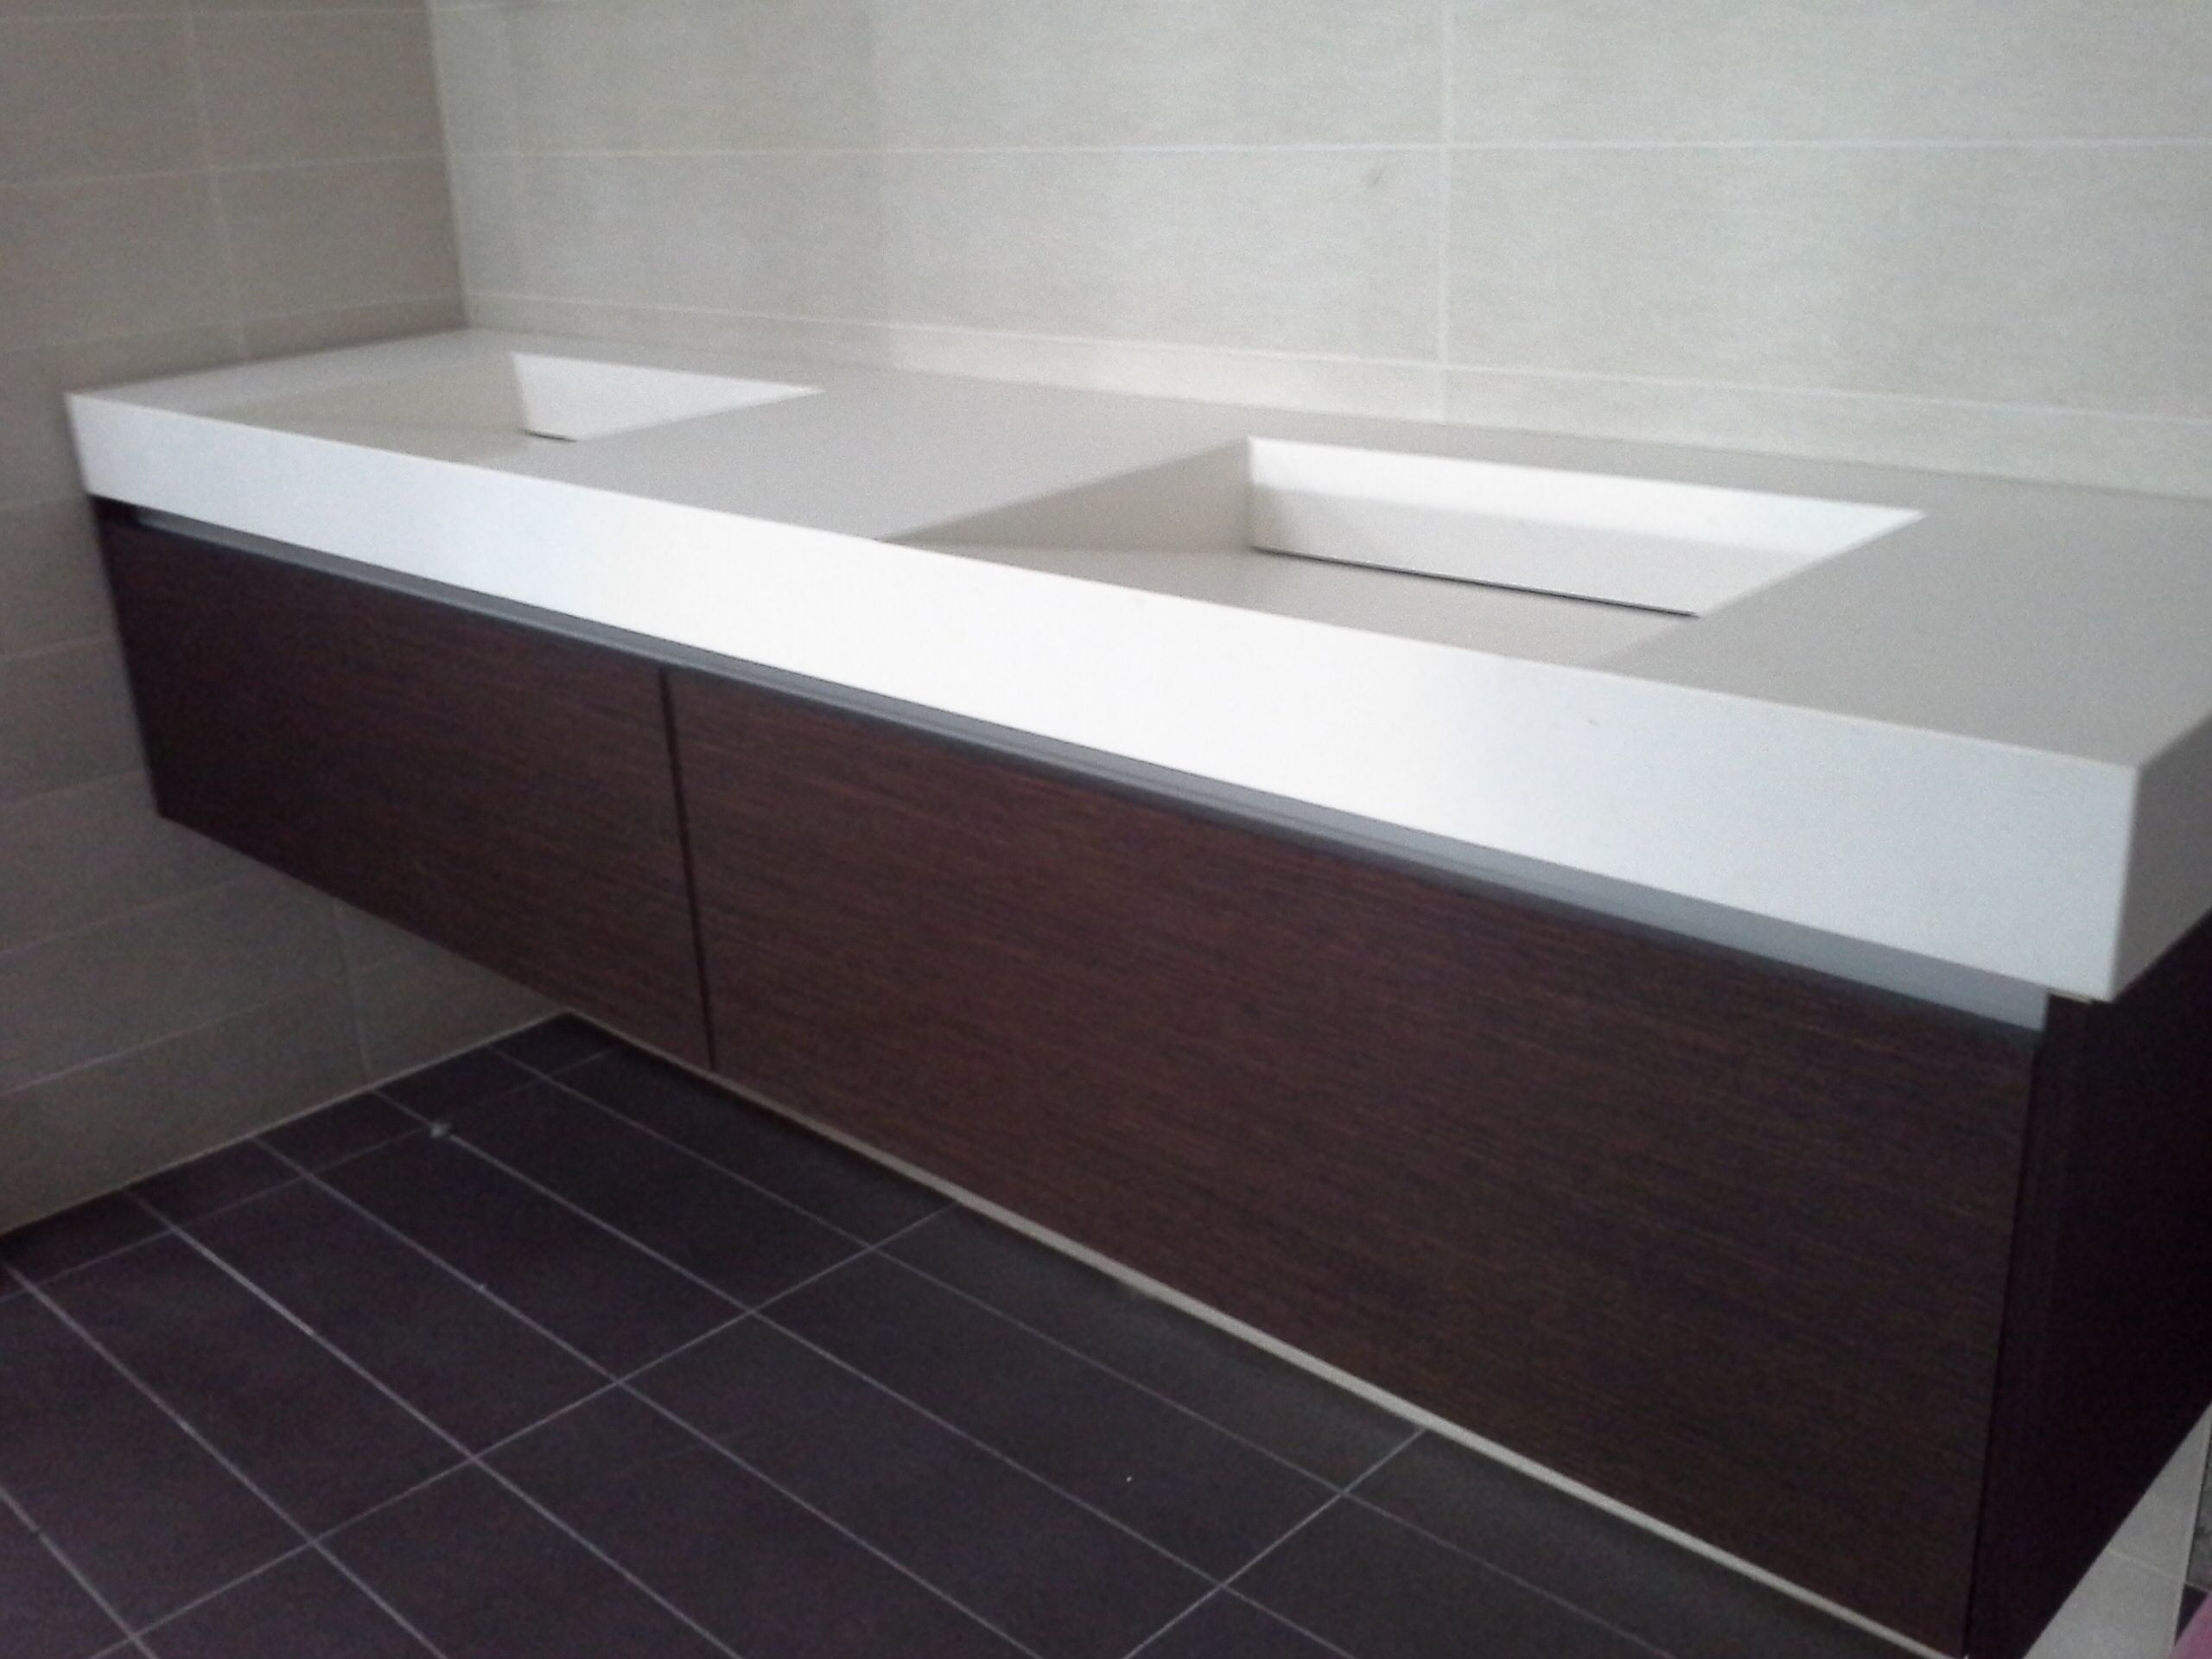 Floating Vanity, White Corian Top With Integrated Sinks That Slope  Backwards, Timber Drawers Under